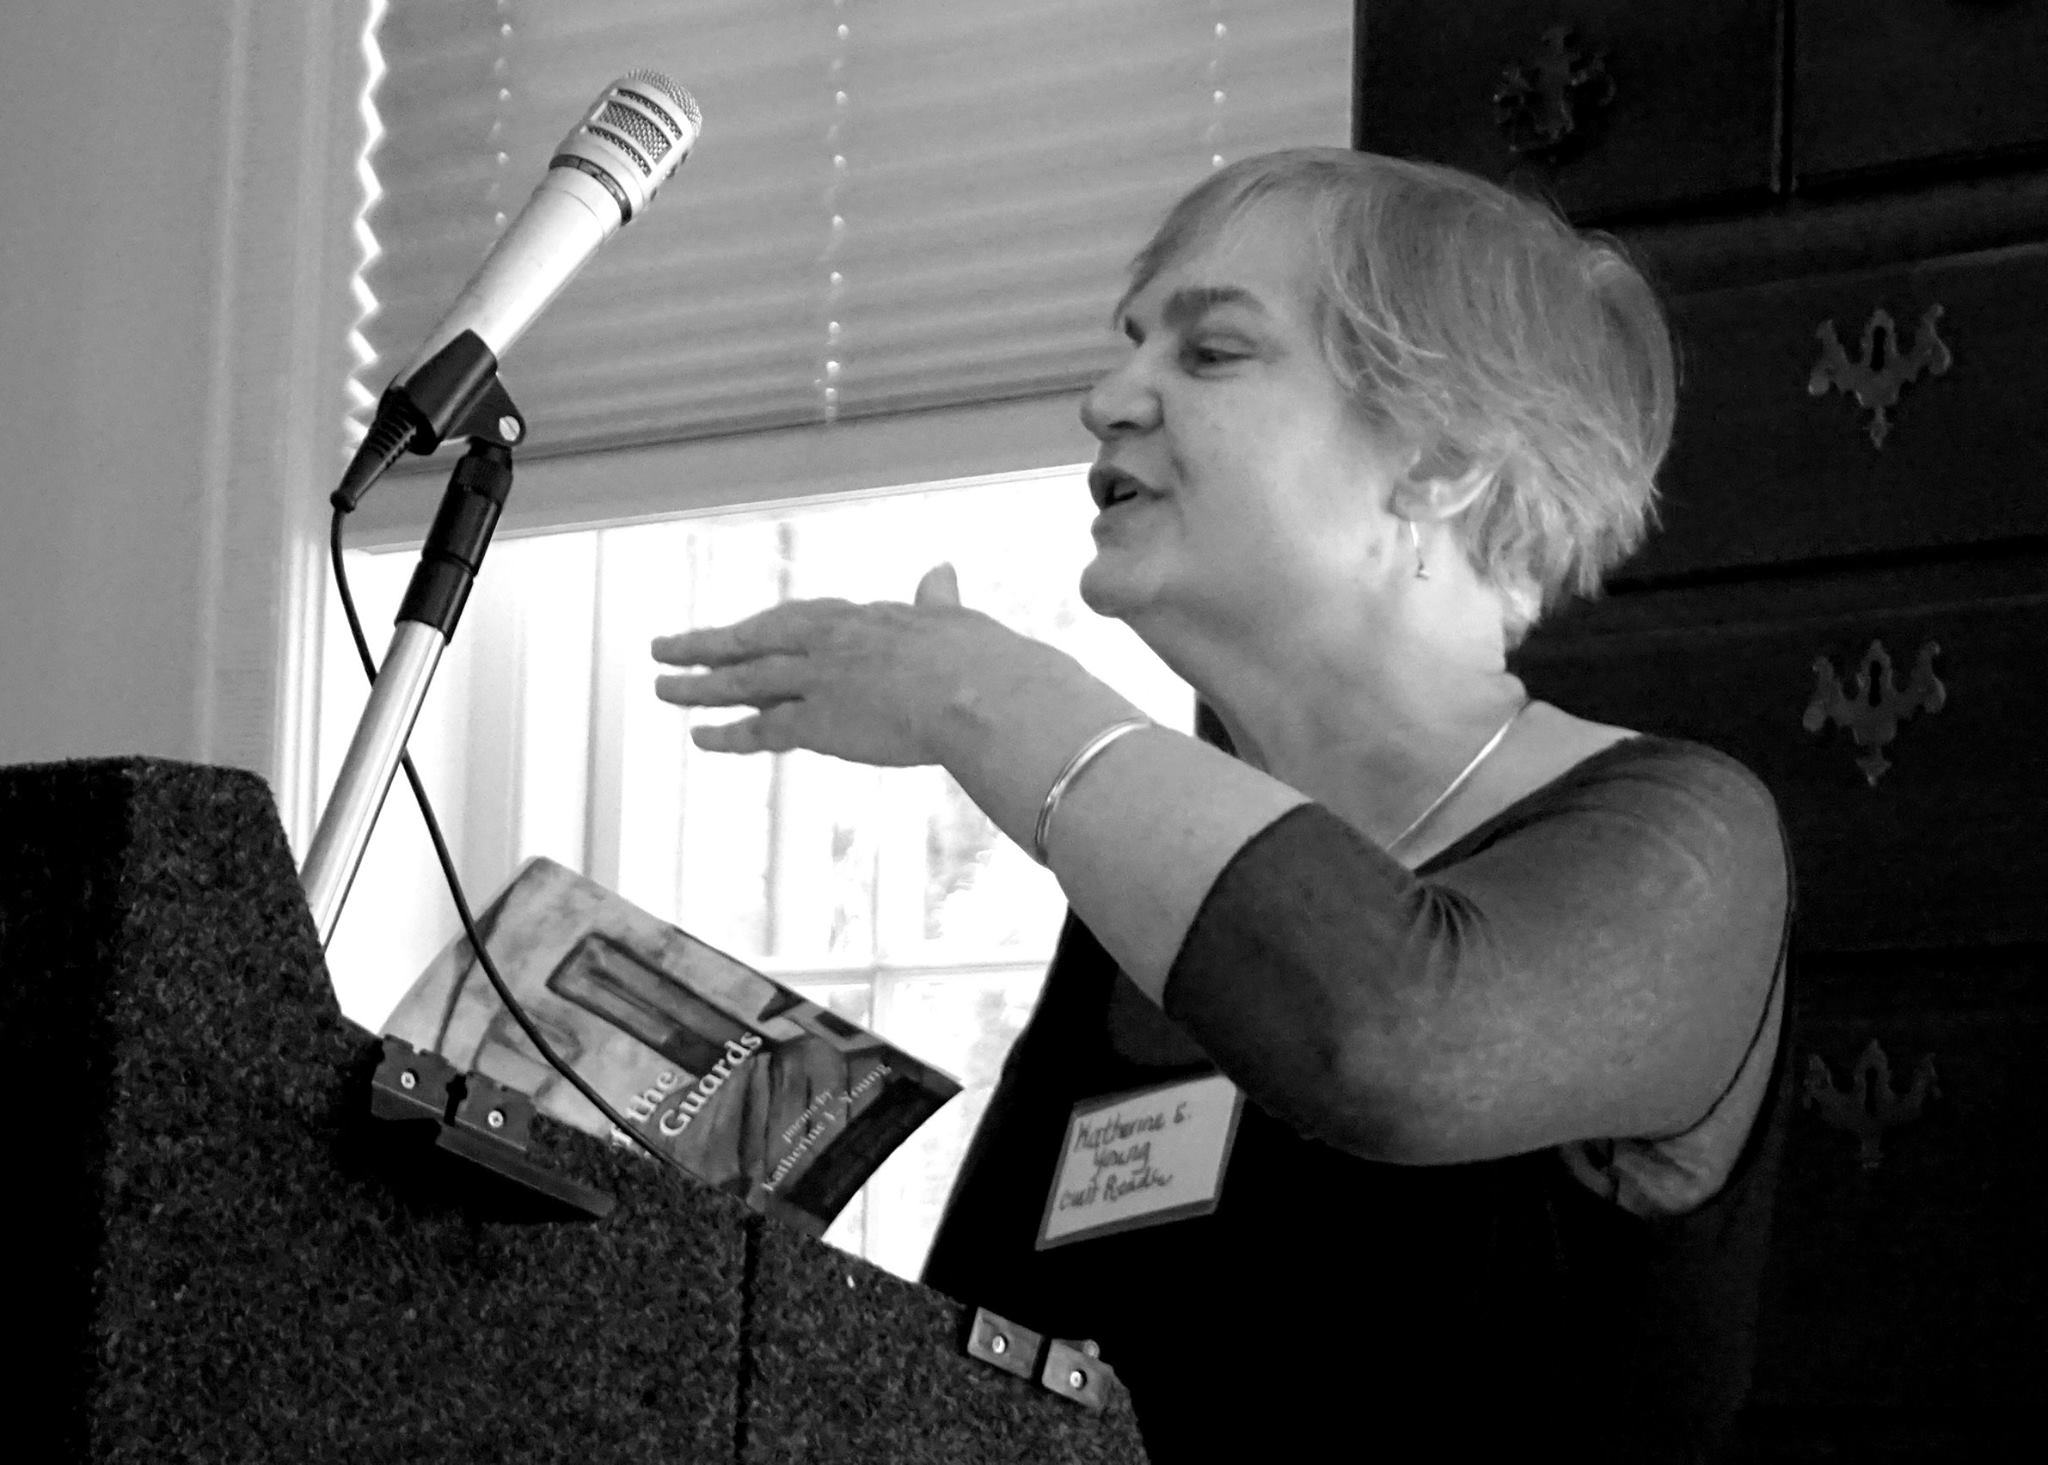 Brockman-Campbell reading at NCPS 19 Sept. 2015 photo by Jeanne Julian (1)